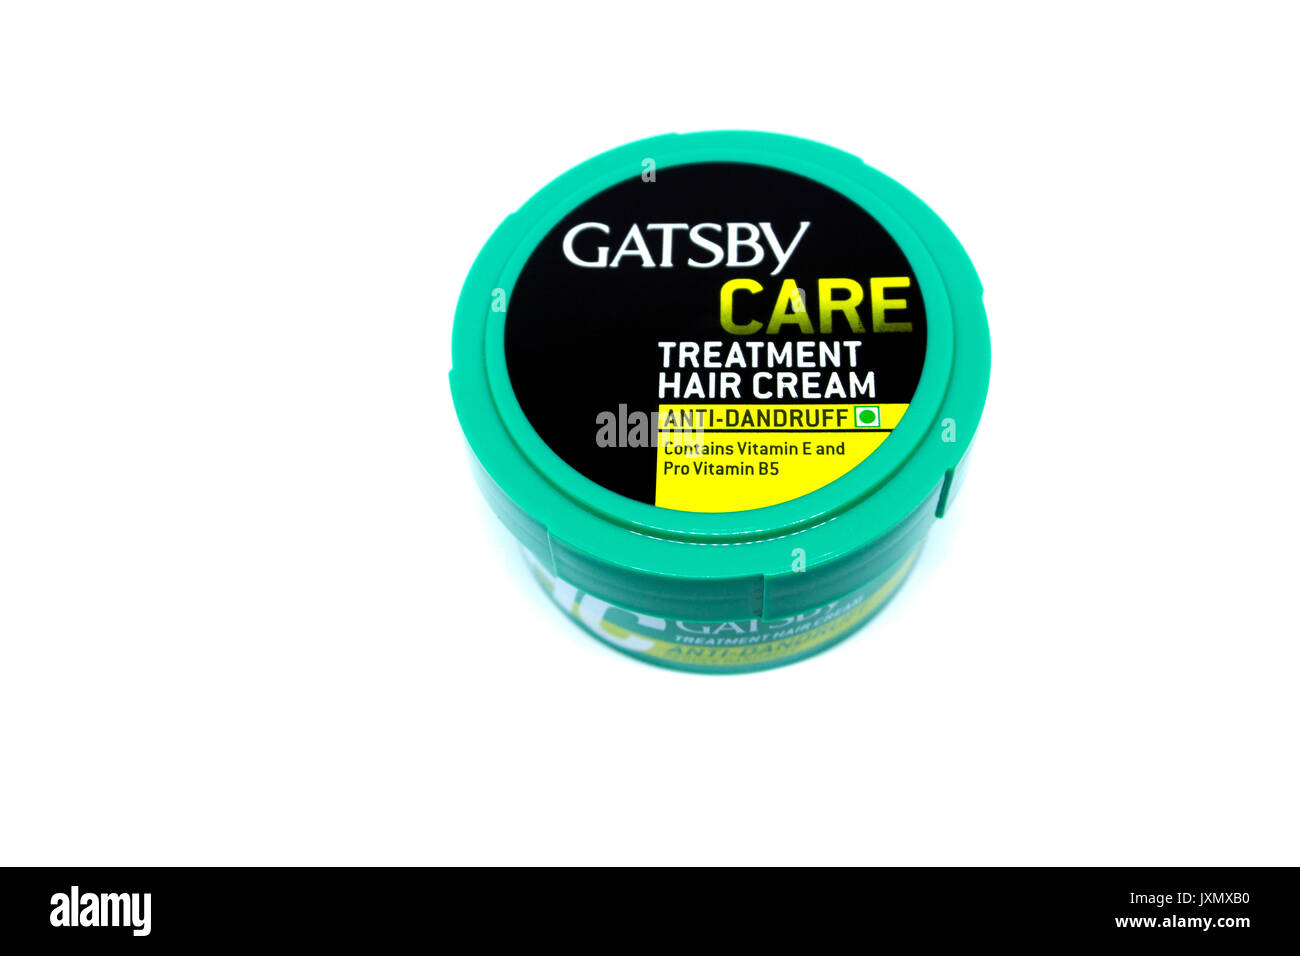 Kota Kinabalu, Malaysia - August 16, 2017: Gatsby Care Treatment  Anti Dandruff isolated on white background. GATSBY brand was born in Japan in 1978. - Stock Image